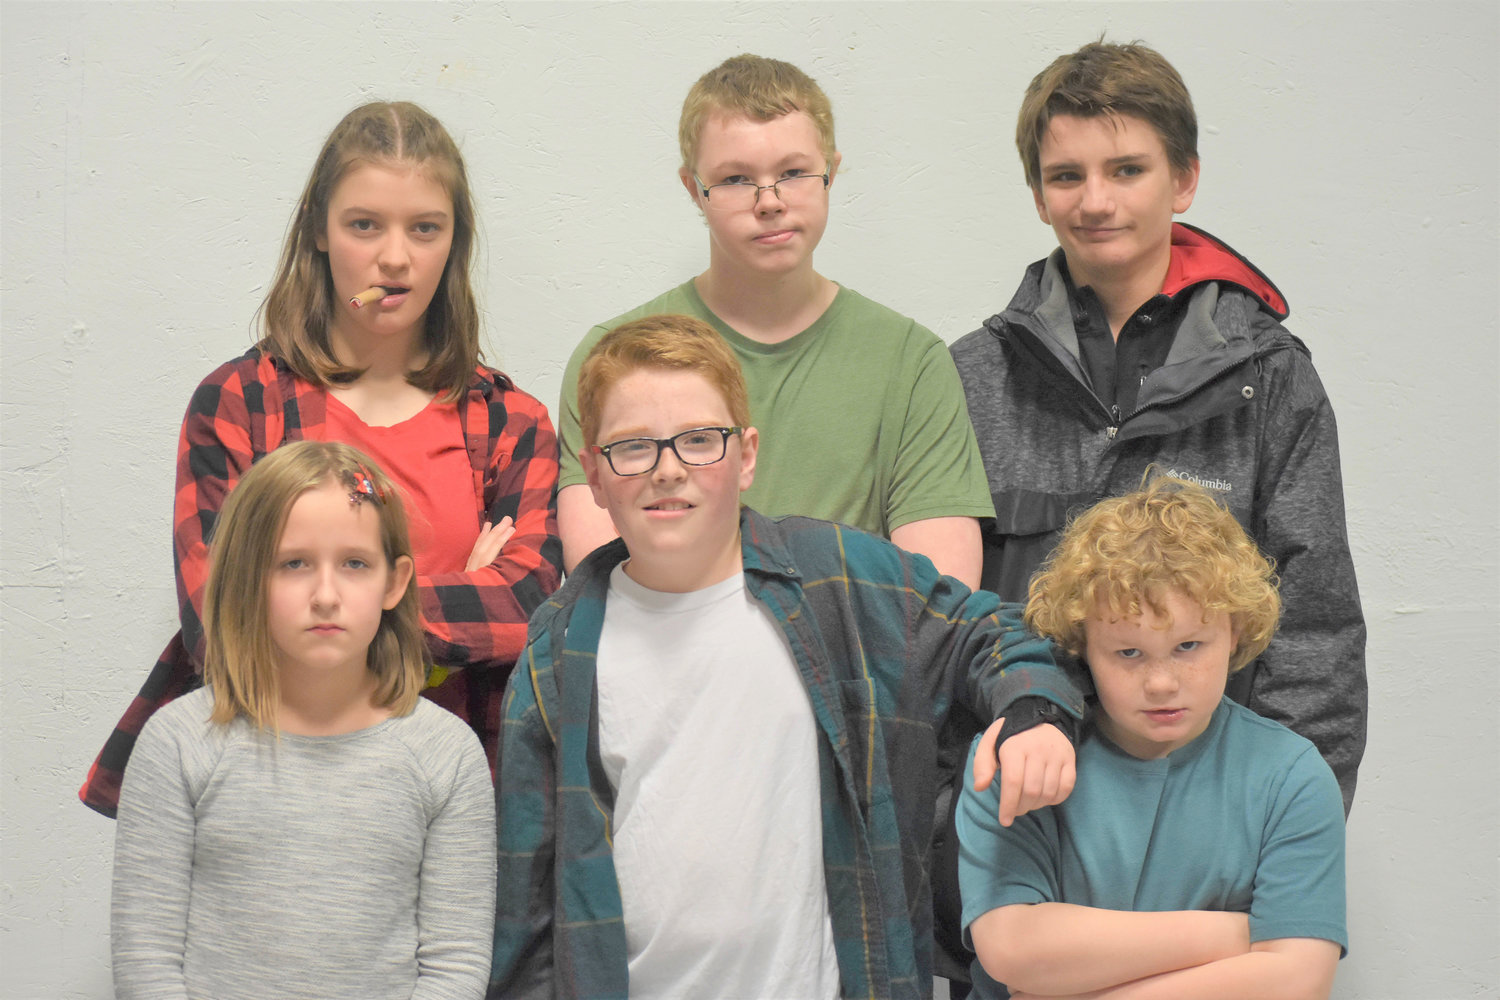 Picutred are Beth Turner, Cameron Tyo, Tarren McCarty, Emma Berry, Brayden Stedge and Caden Tyo..